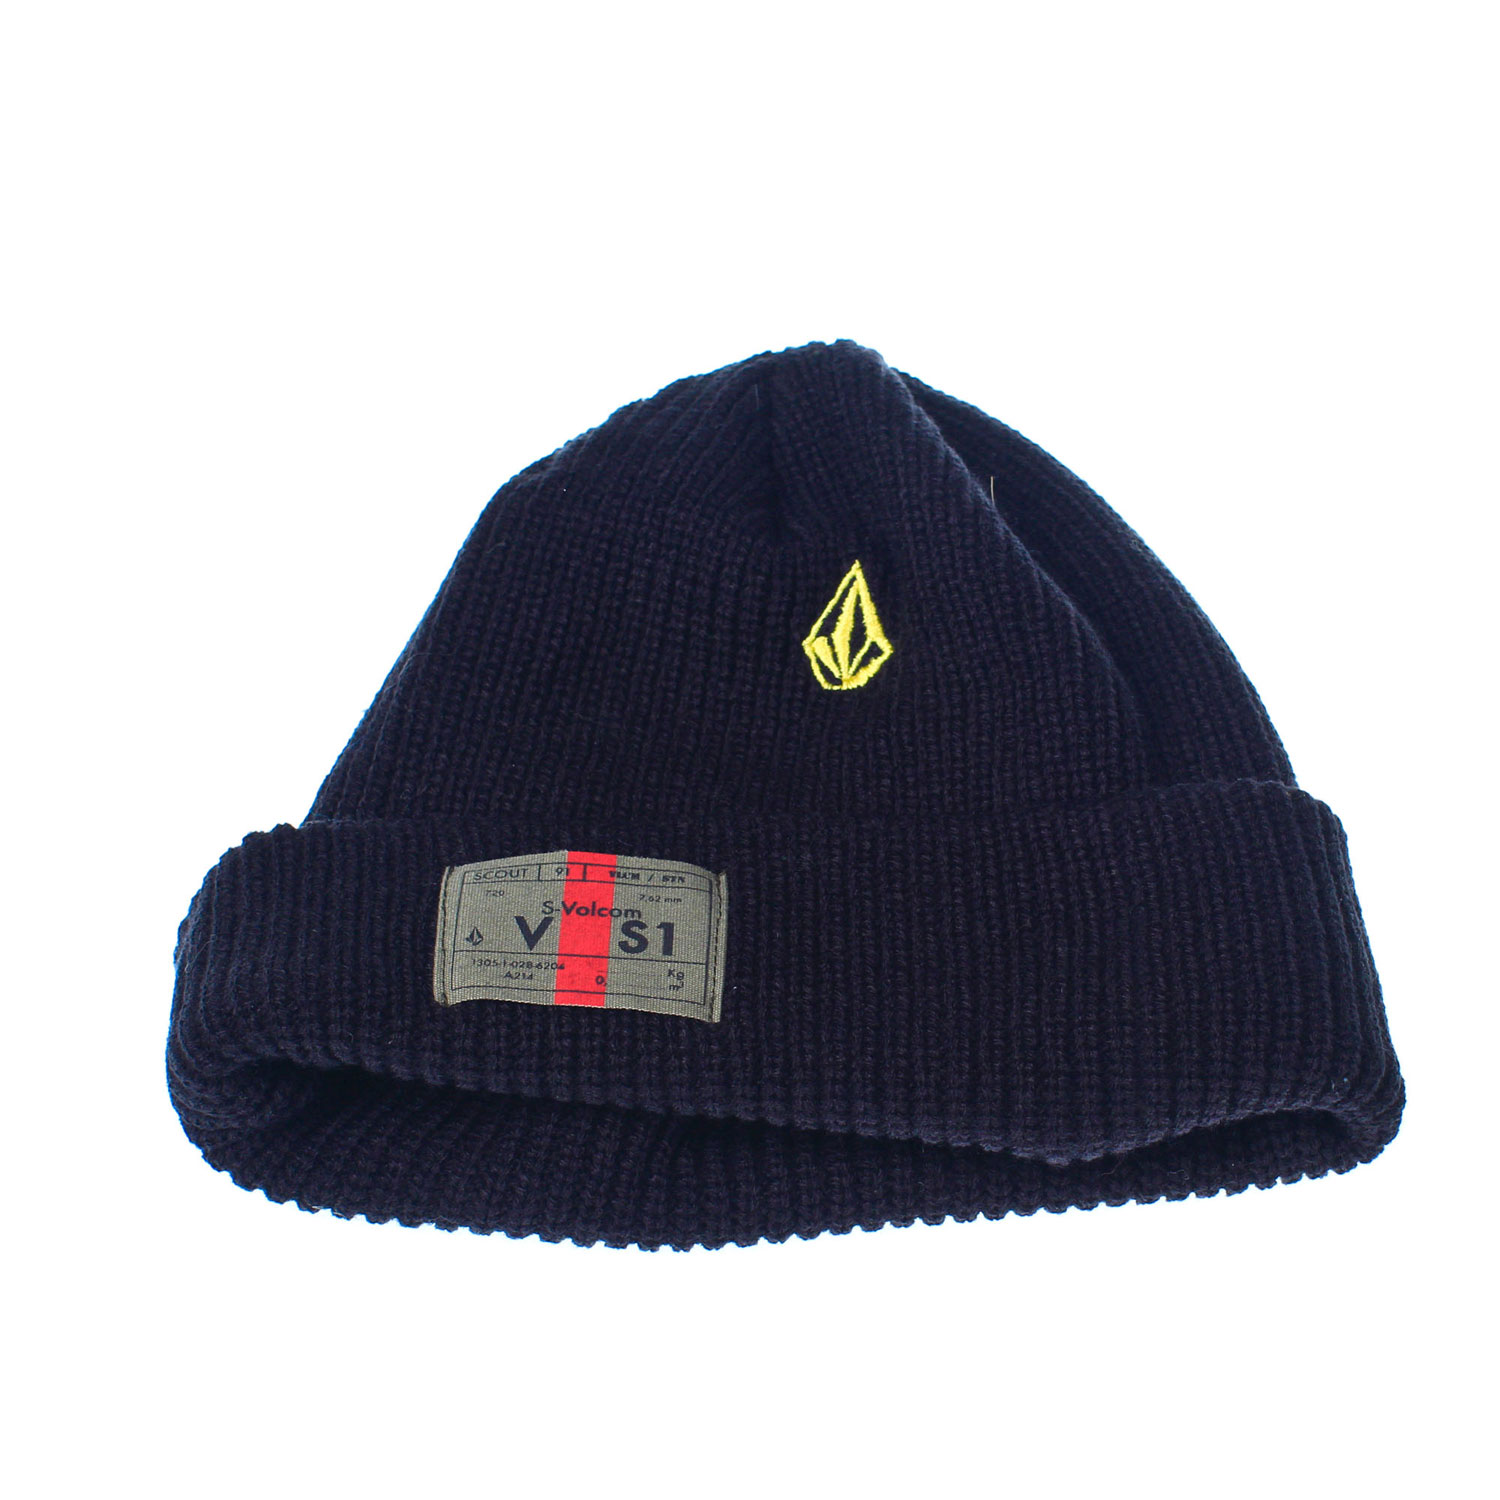 Surf Key Features of the Volcom Clone Beanie: One Size Fits Most Machine Knit Acrylic Fleece Lined Roll Over Stone Embroidery Military Woven Label Roll Over Fit - $20.00